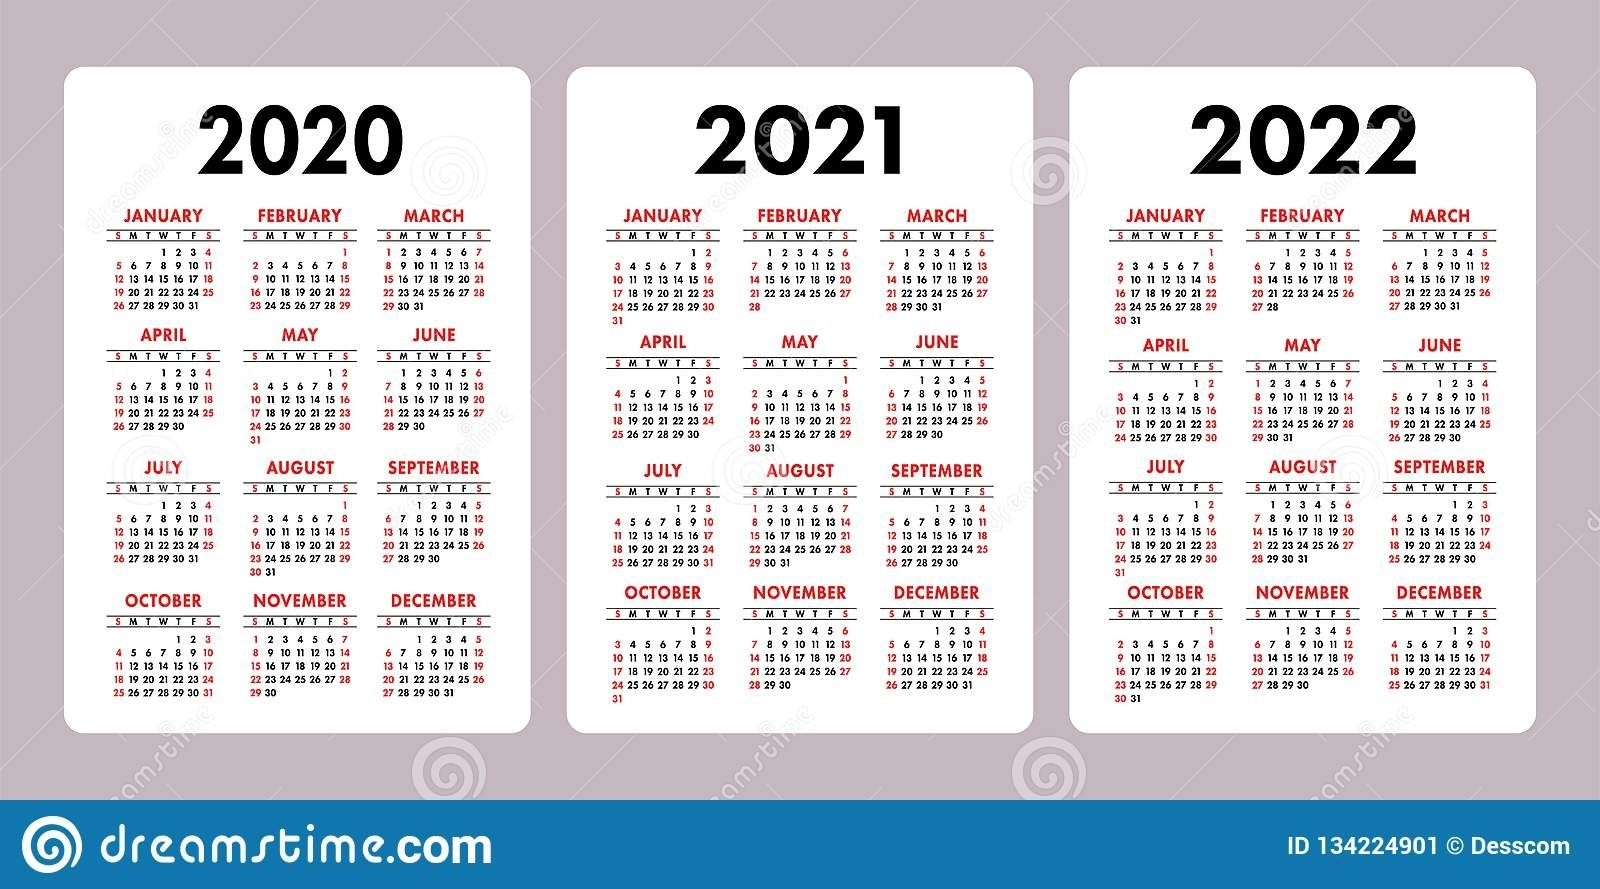 Collect Free Printable Calendar 2020-2022 | Calendar